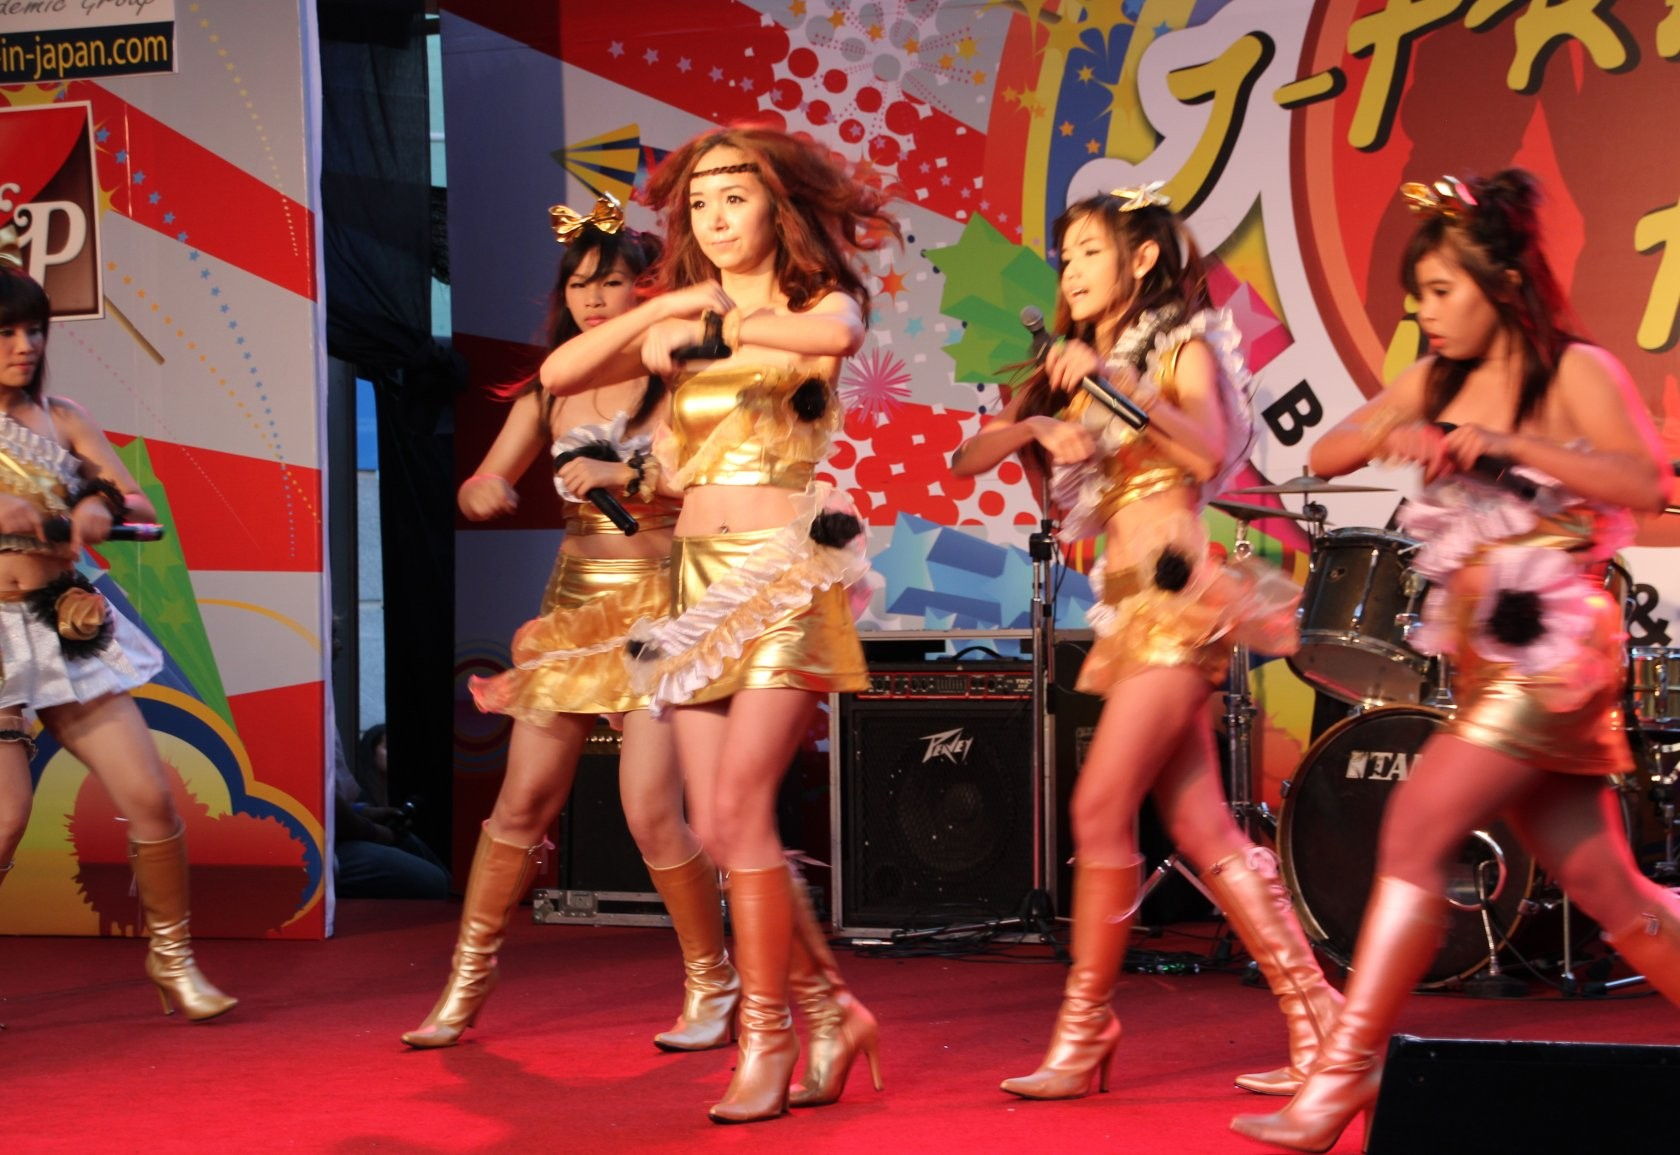 Bangkok - Cosplay / Festival J-Trends in Town am MBK XI